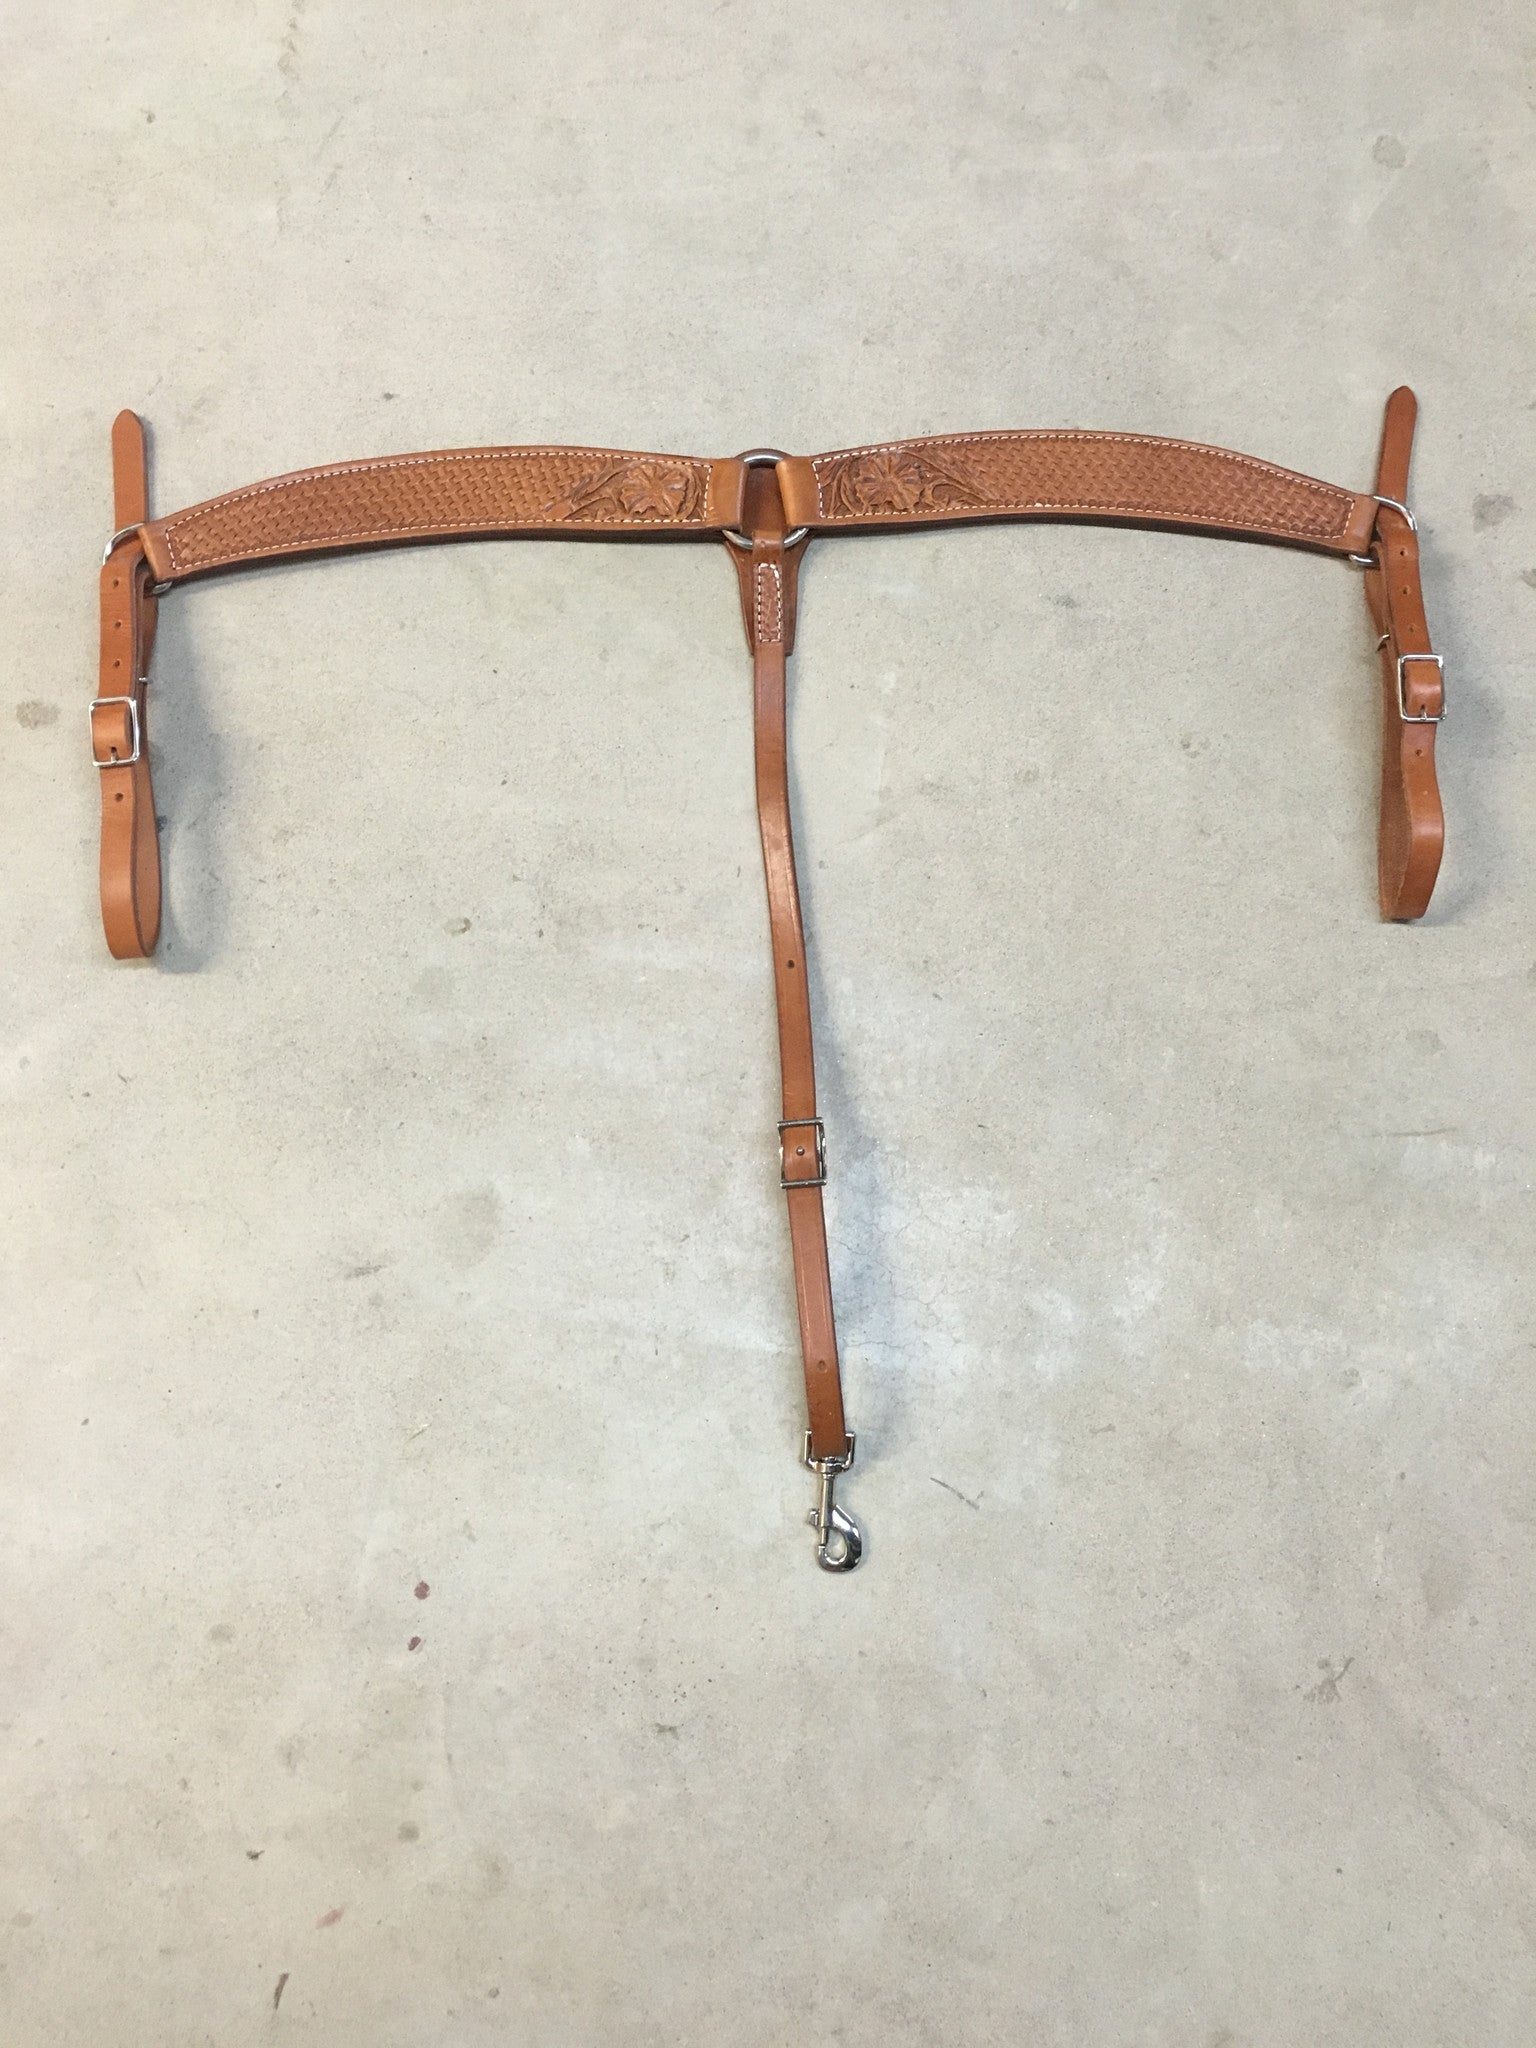 3-Piece Barrel Breast Collar Flower and Basket Tooling - The Sale Barn - 1